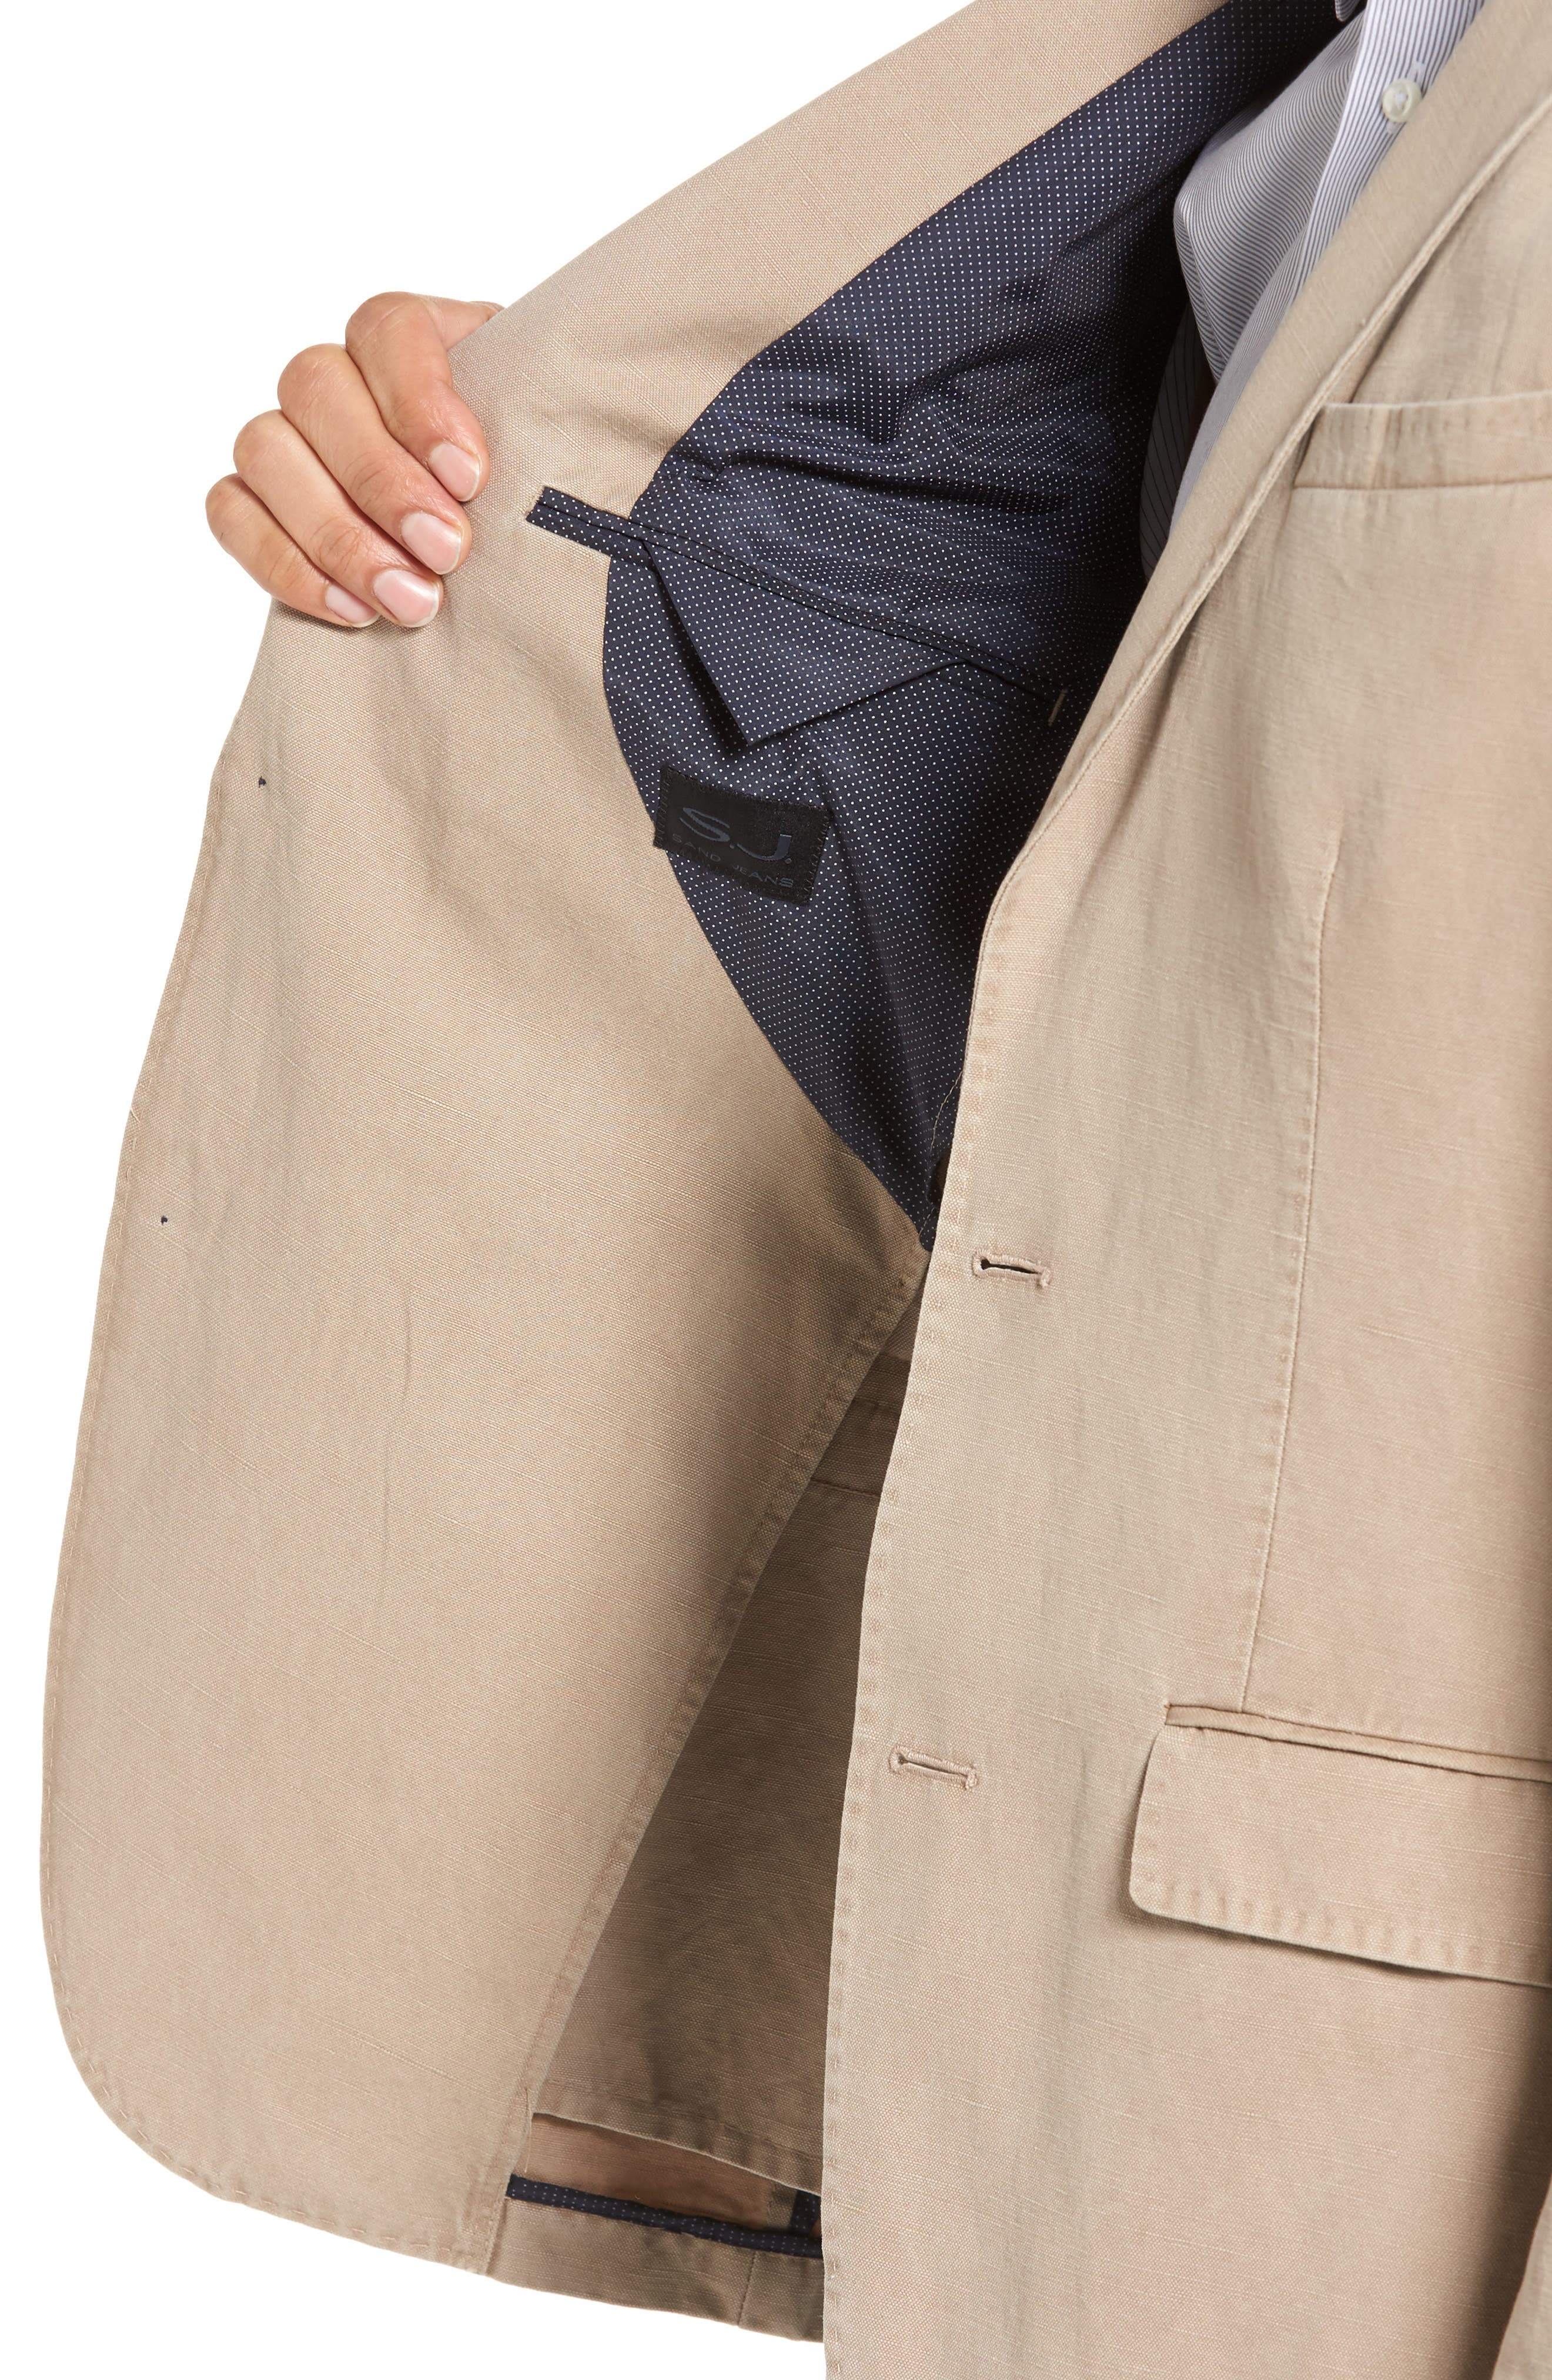 Trim Fit Cotton & Linen Blazer,                             Alternate thumbnail 4, color,                             271